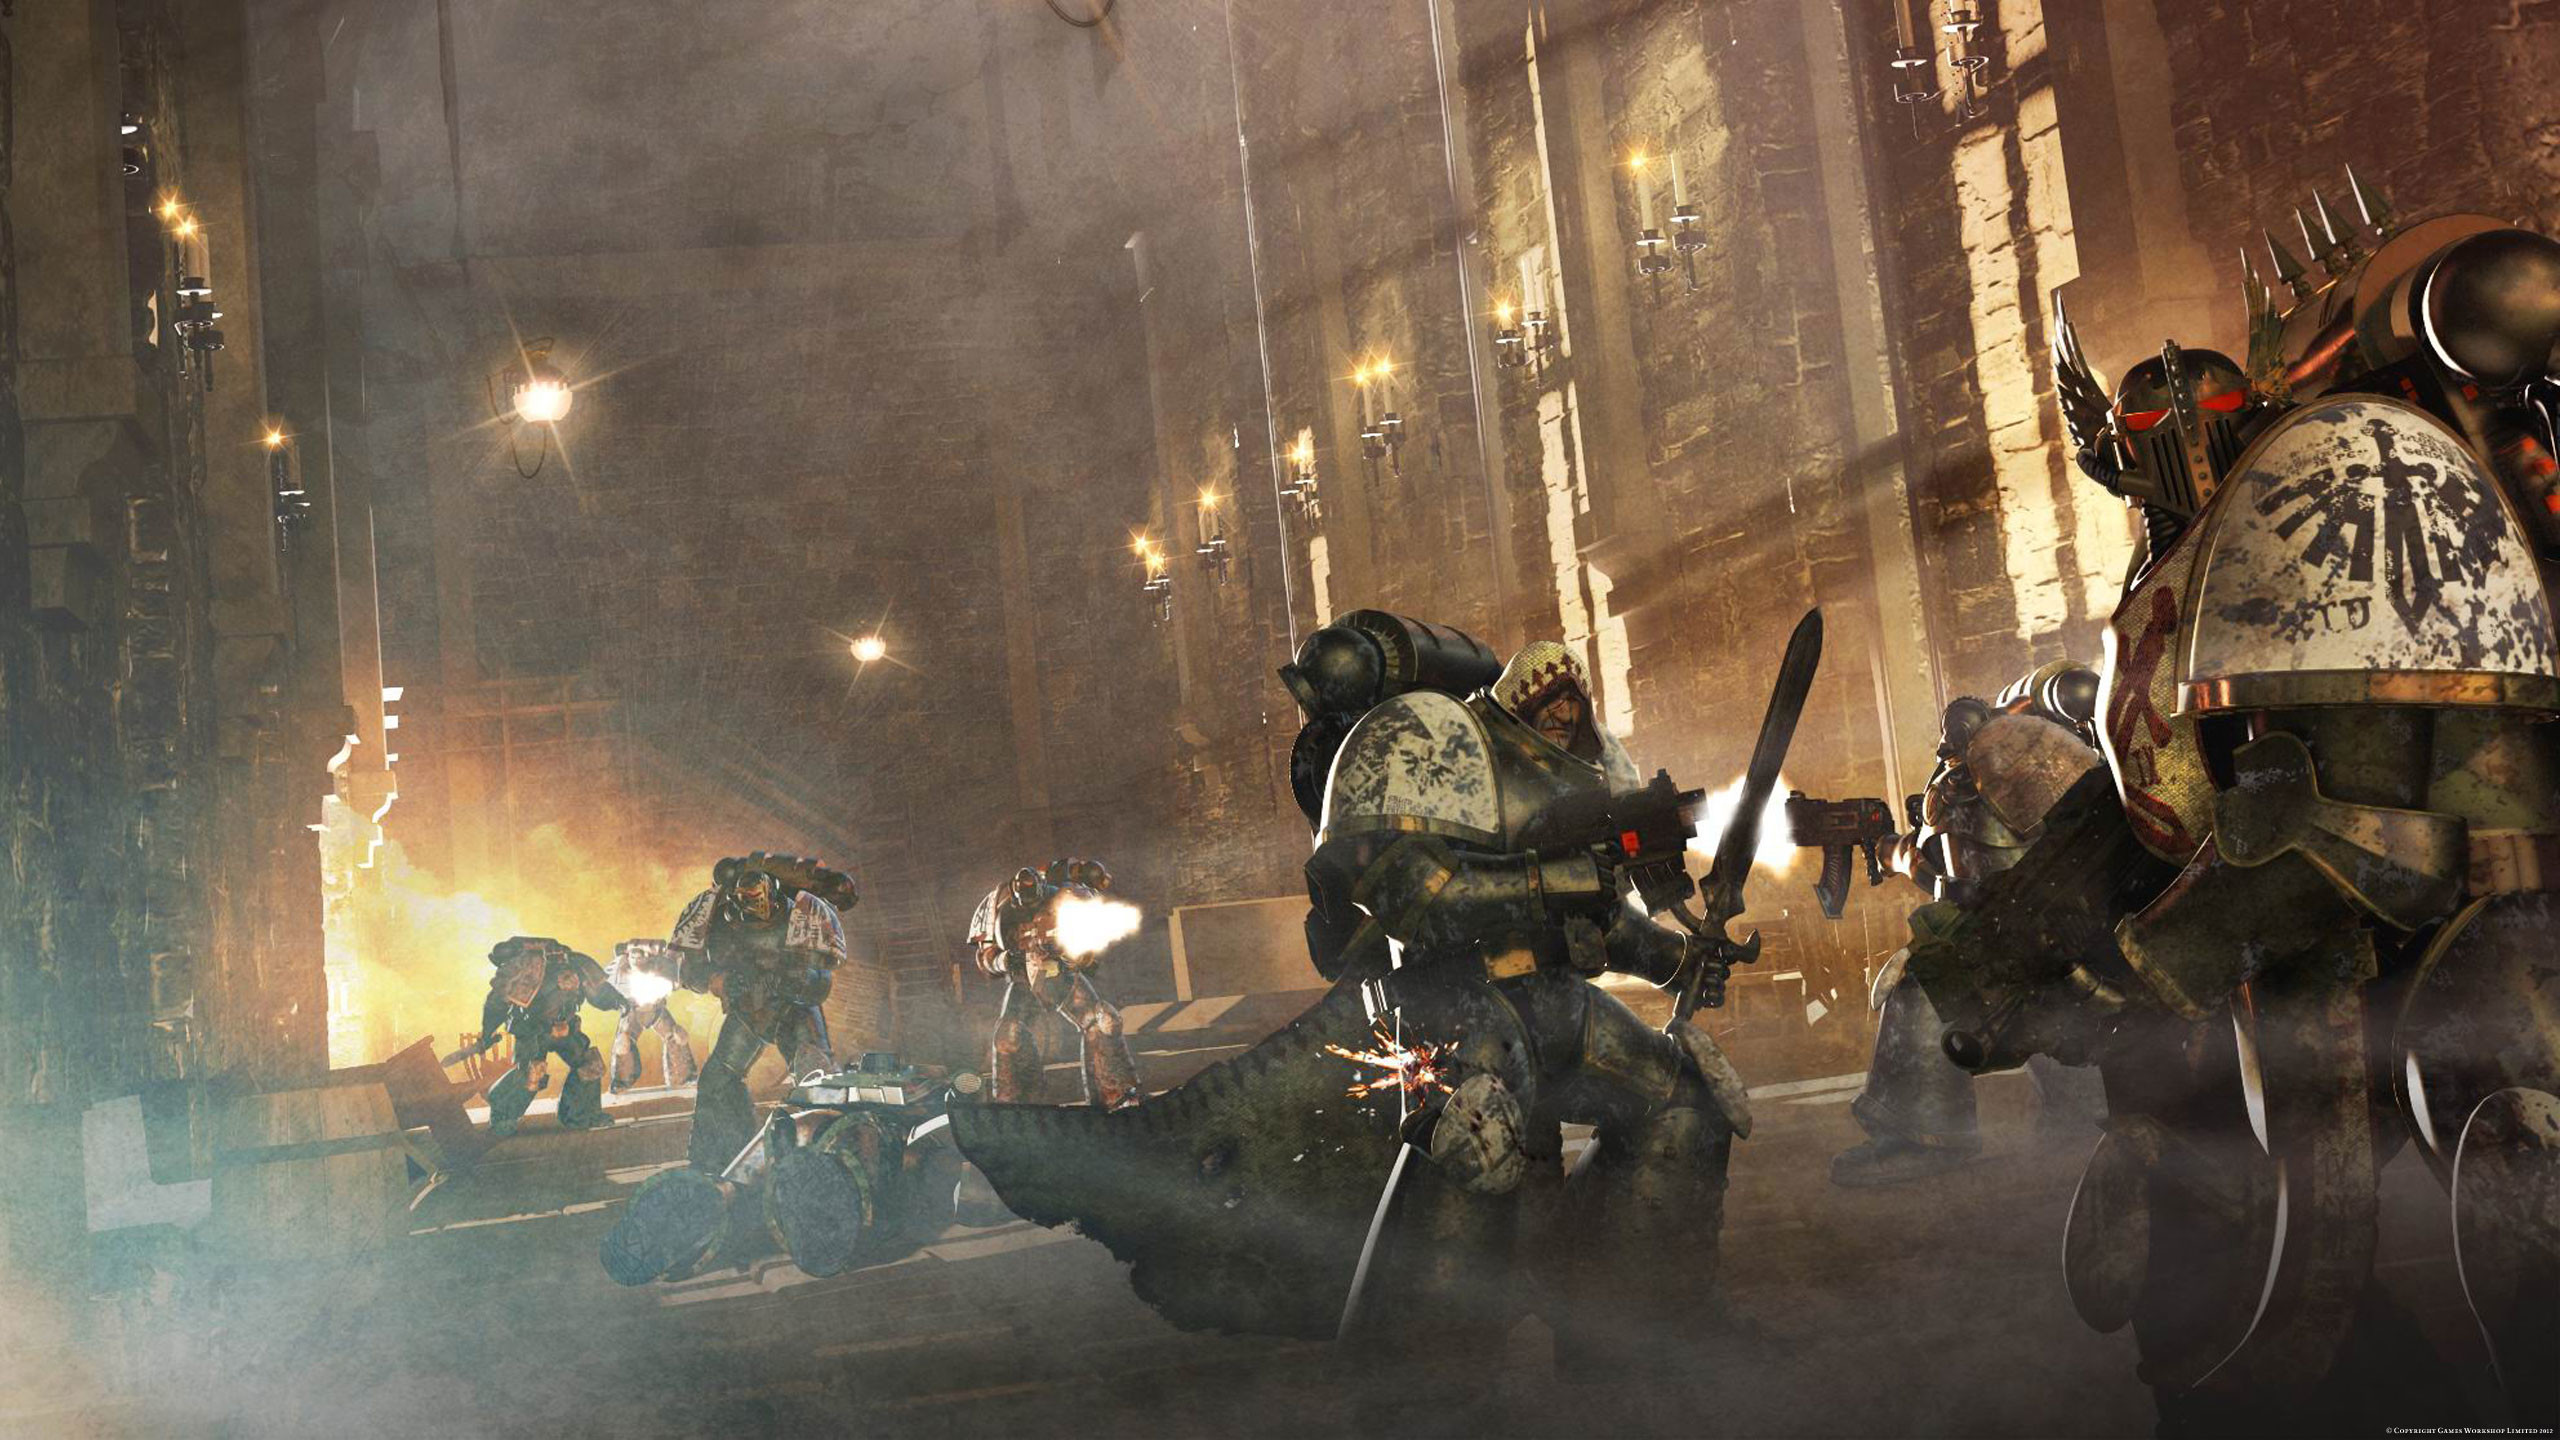 Warhammer 40k Wallpapers. by TheLordOfChangeApr 2 2015. Load 50 more images  Grid view